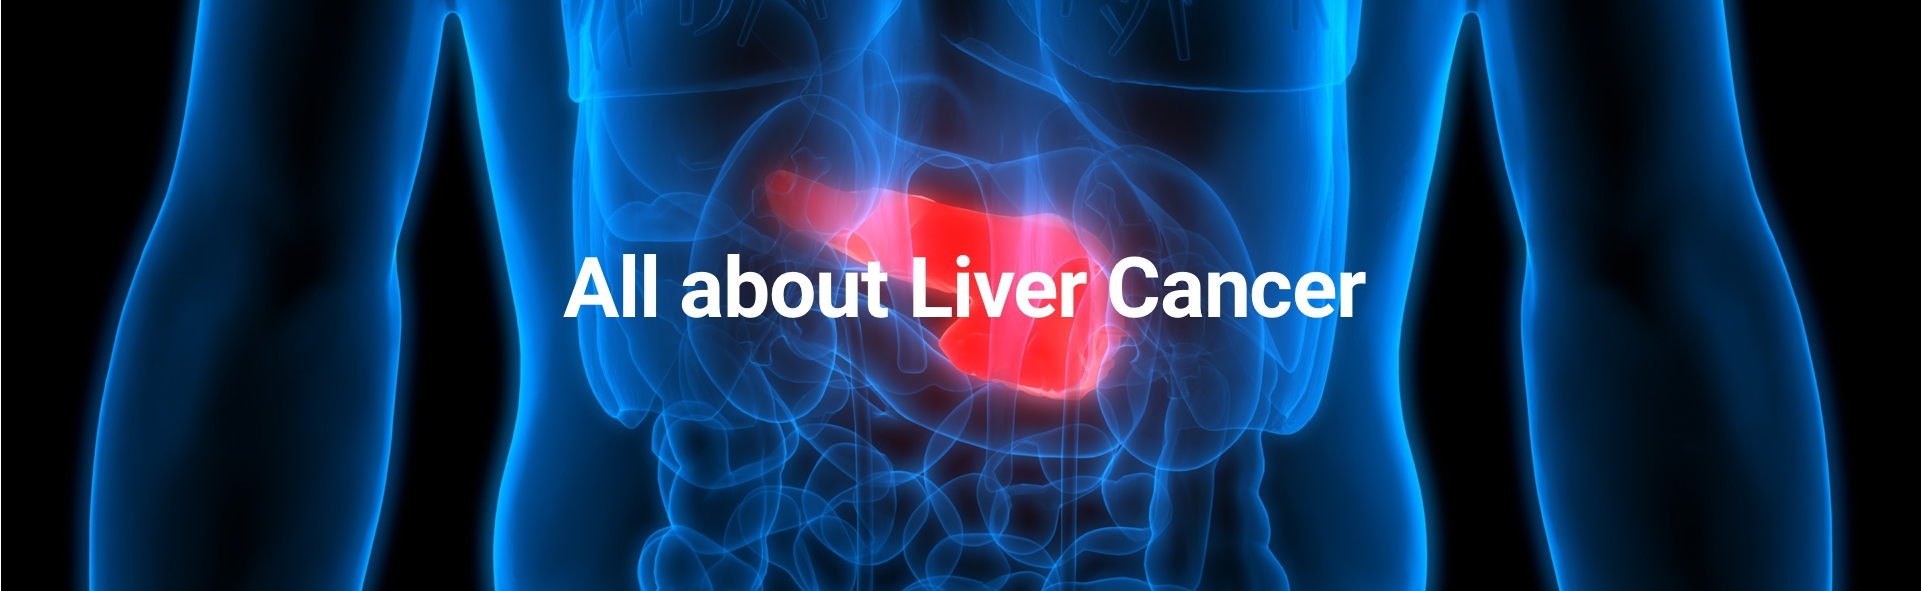 All About Liver Cancer